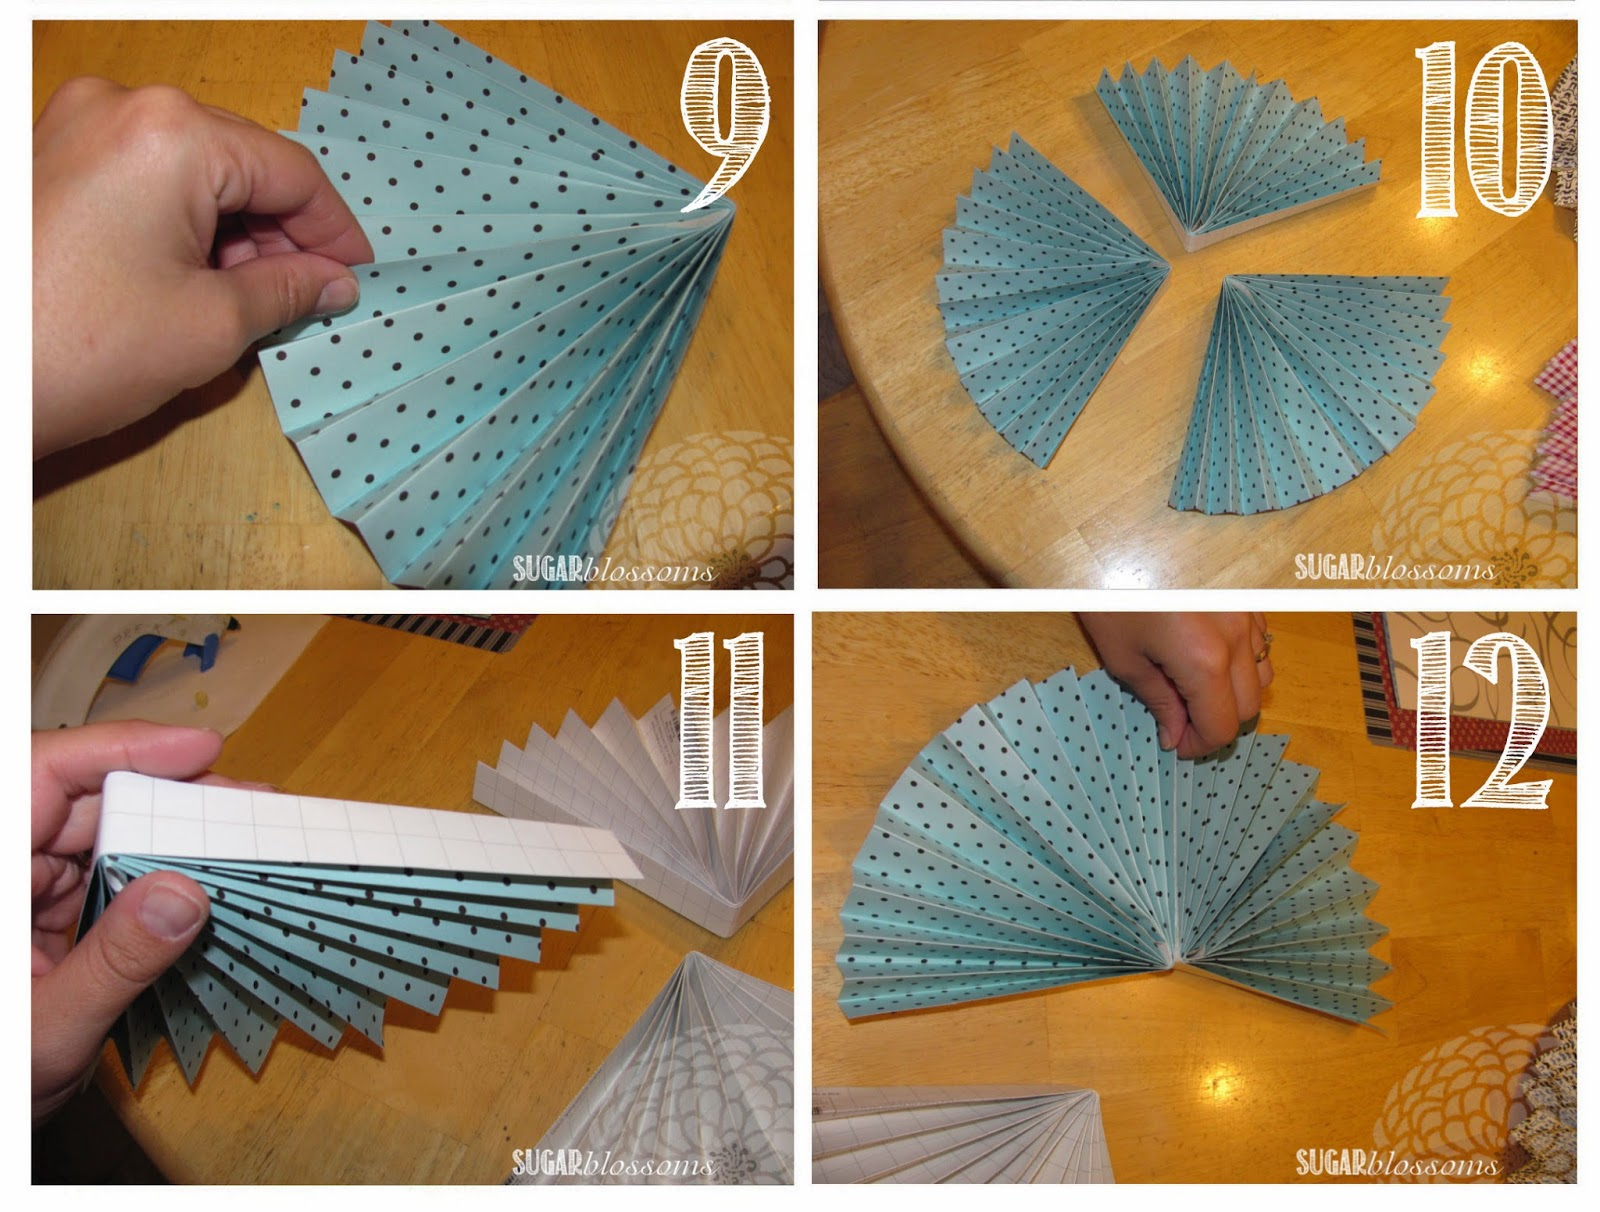 Sweet Sugar Blossoms Diy Paper Fans